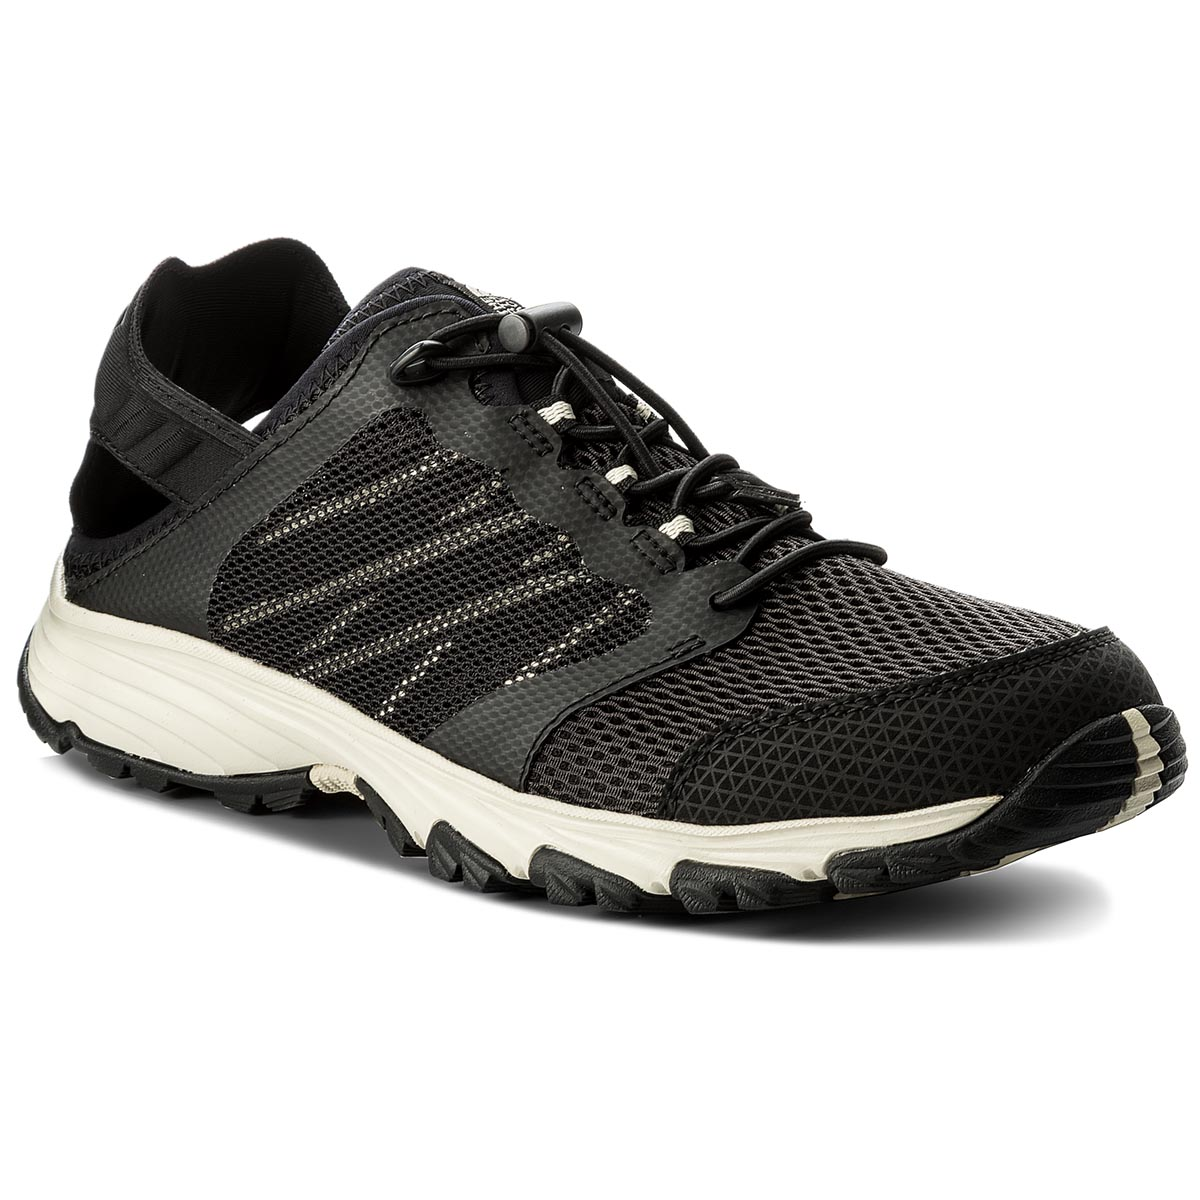 Pantofi THE NORTH FACE - Litewave Amphibious II T939I2LQ6 Tnf Black/Vintage White